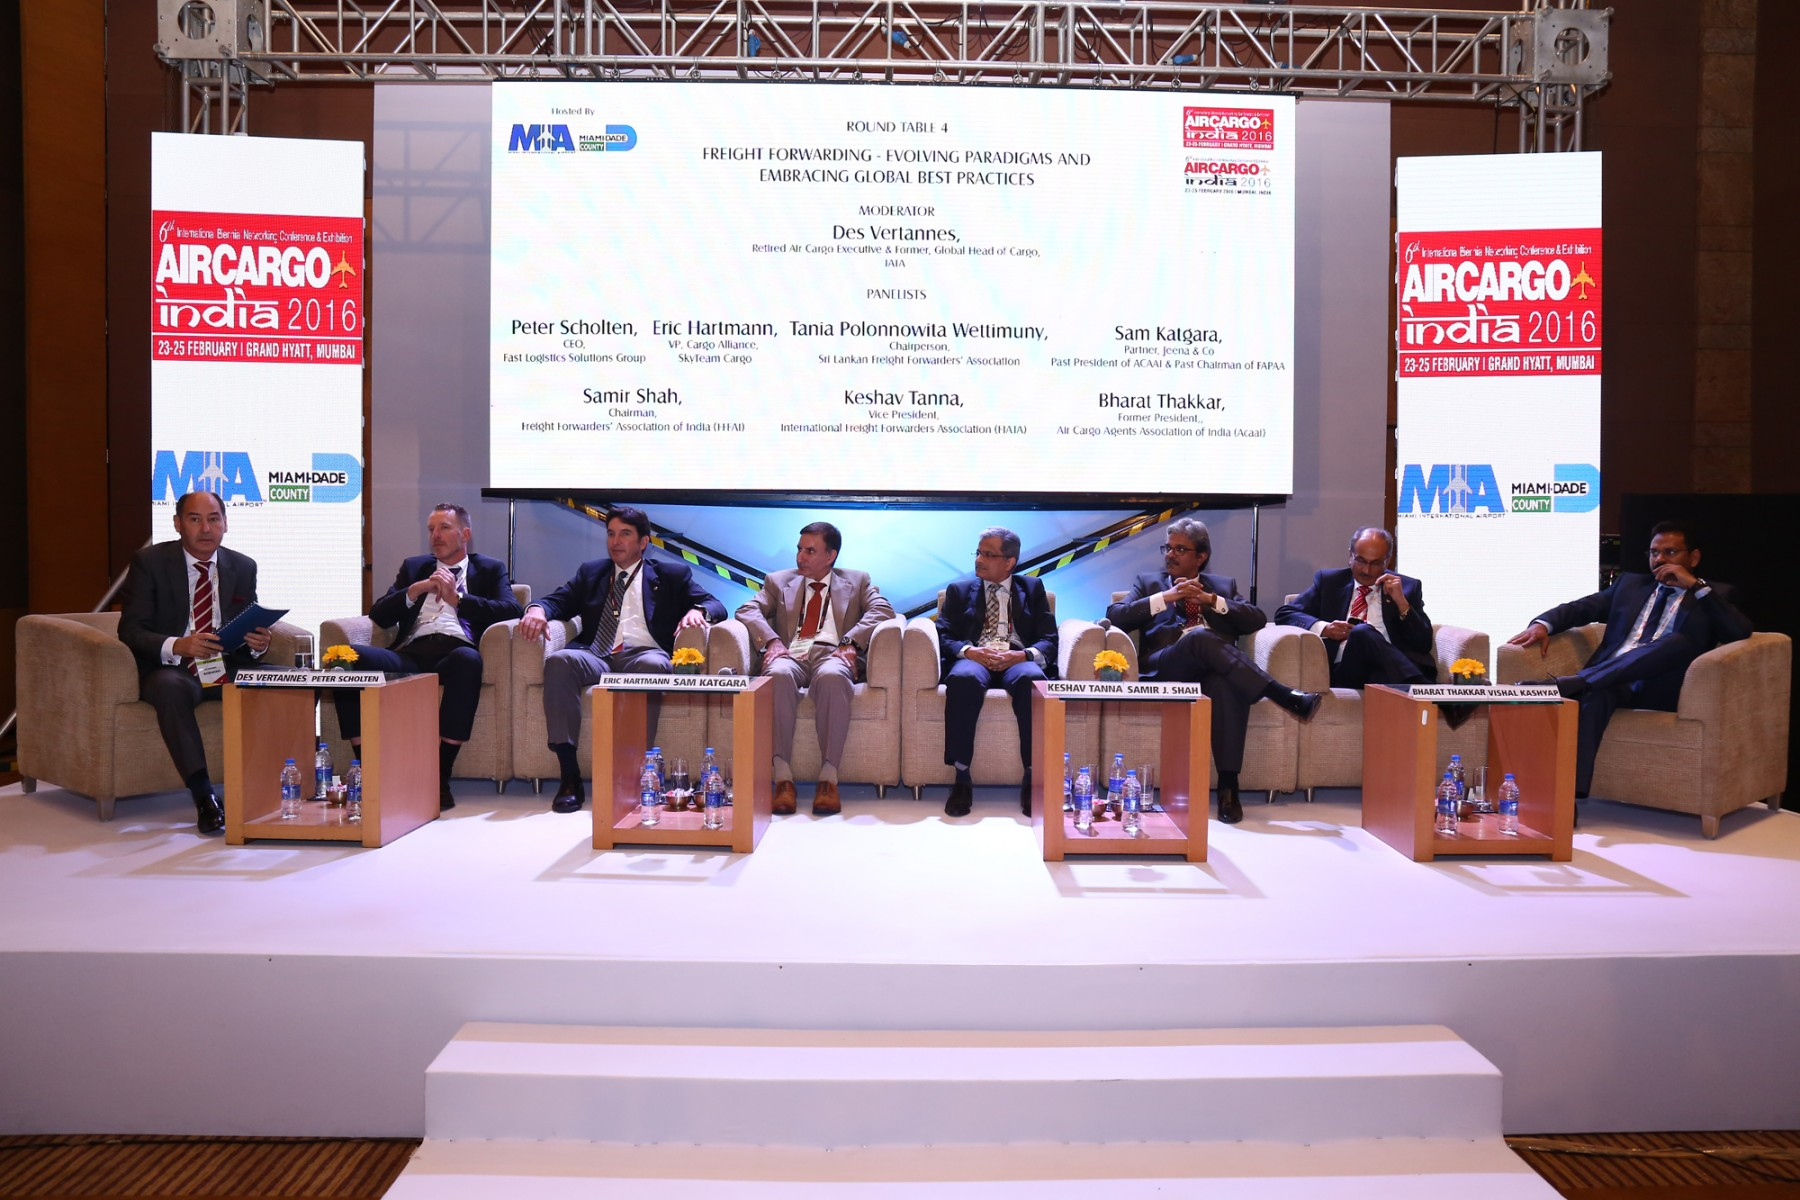 Air Cargo India 2016 roundtable